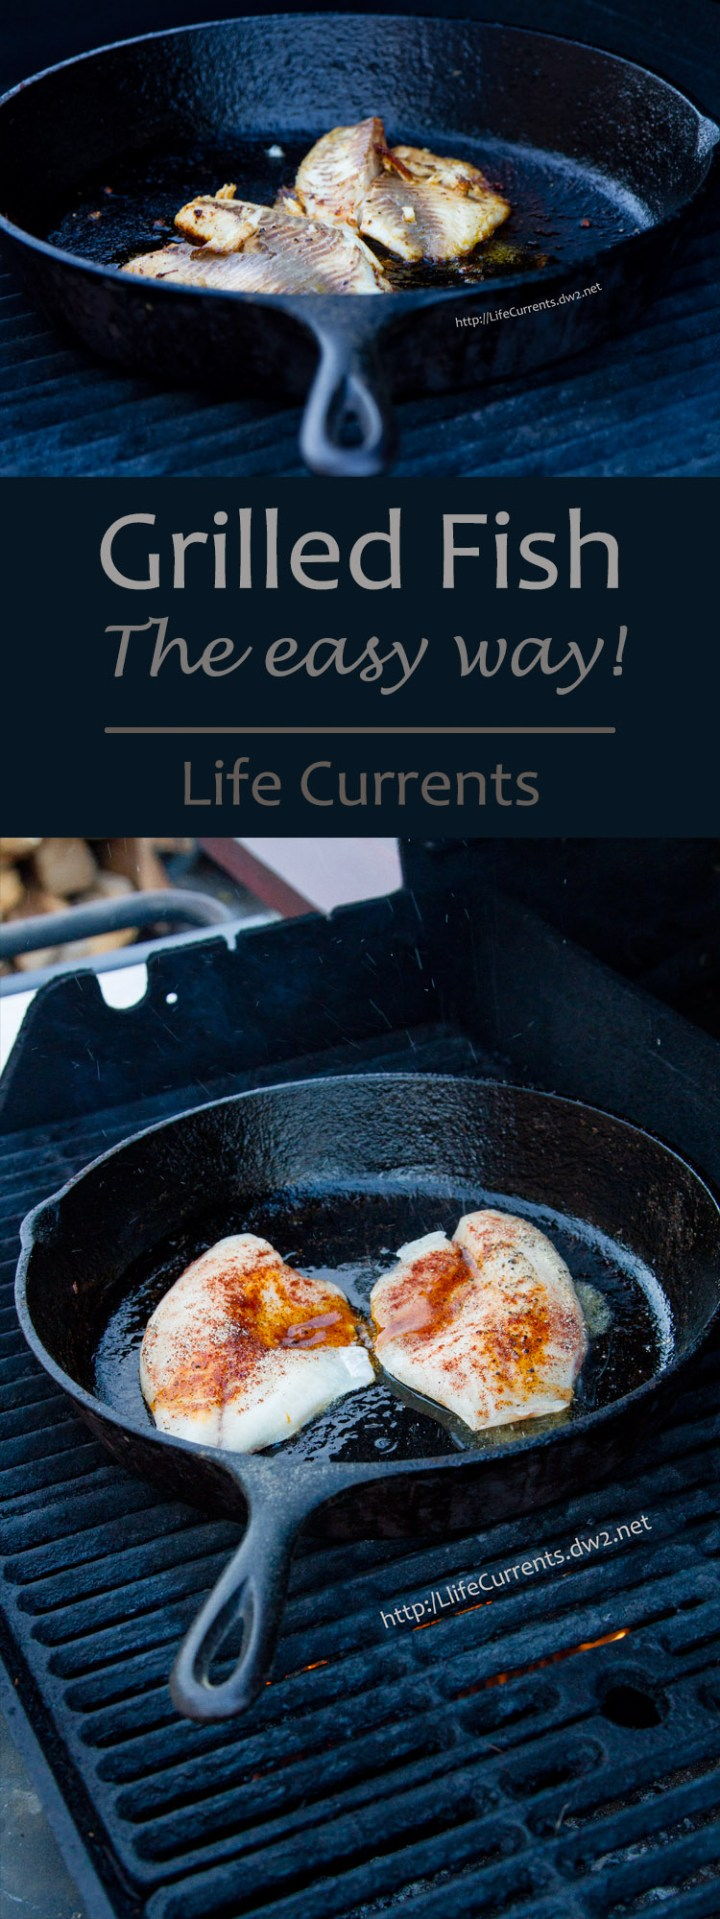 Grilled Fish done the easy way, on the grill right in the cast iron skillet! A great weeknight meal!